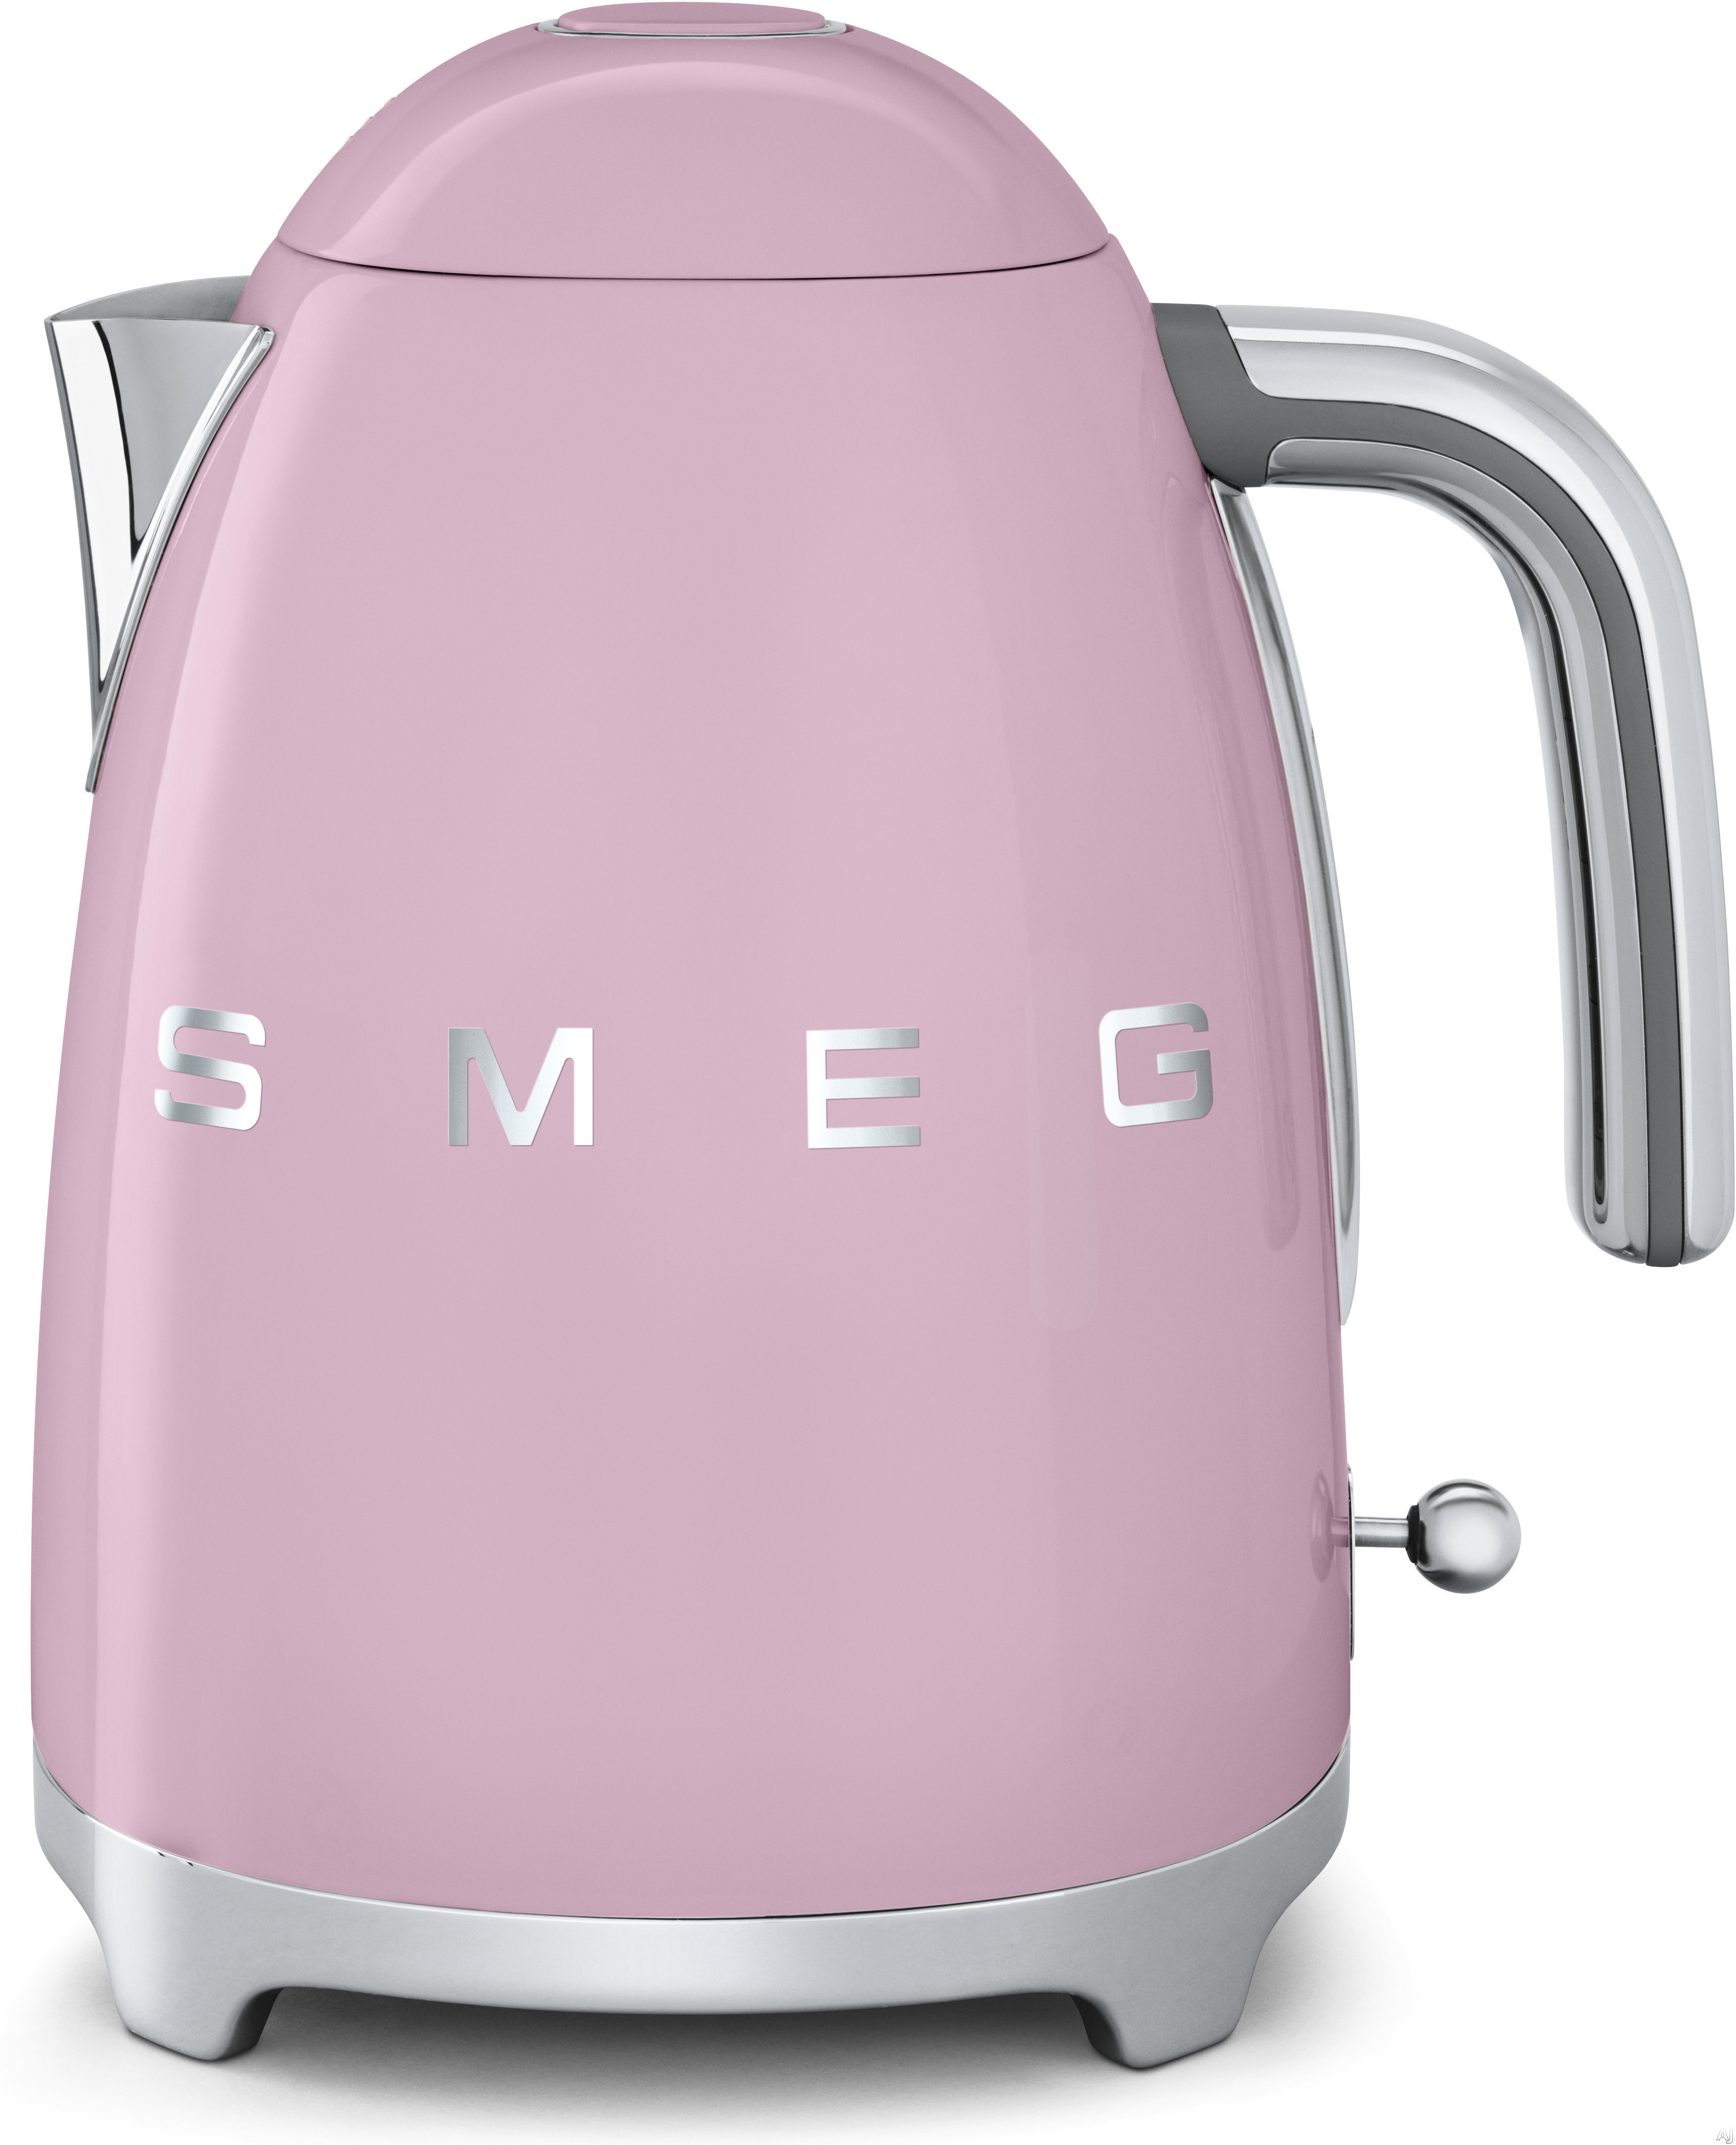 Smeg 50 s Retro Design KLF01PKUS Electric Kettle with 56 oz. Capacity Soft Opening Lid Auto Shut Off 360 Degree Swivel Base Anti Slip Feet and Built in Cord Wrap Pink